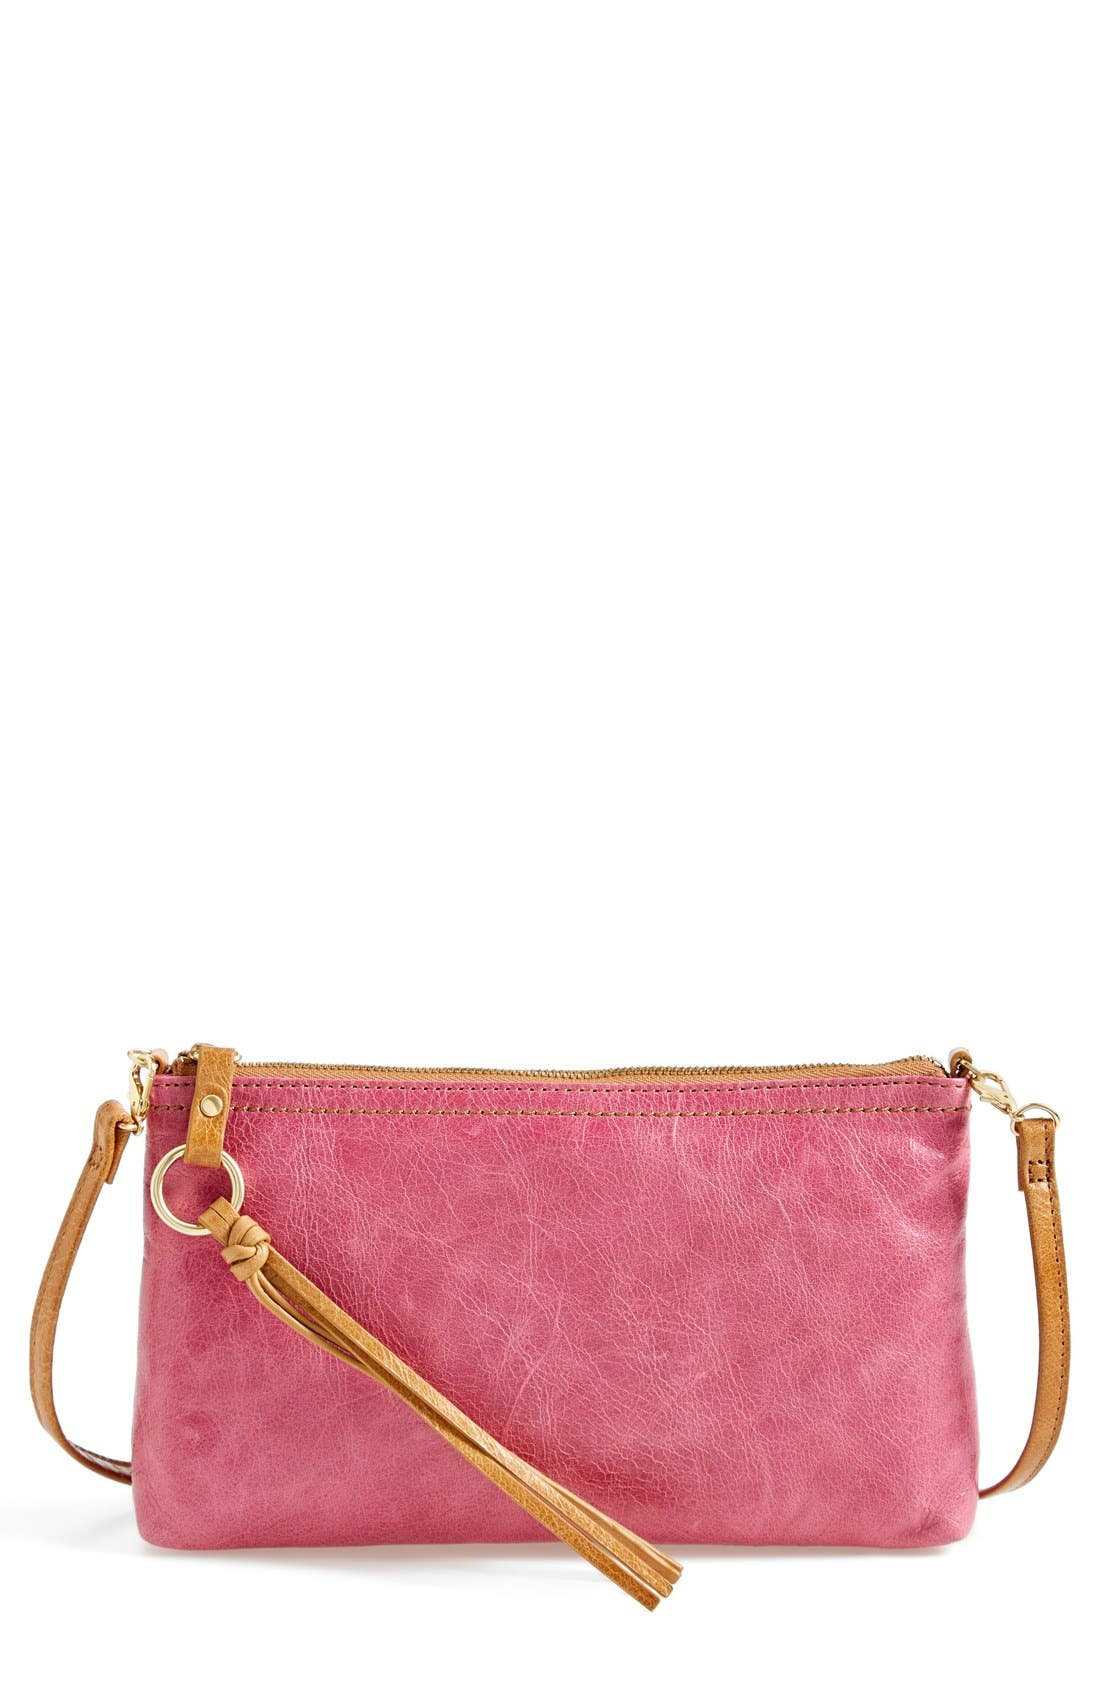 'Darcy' Leather Crossbody Bag,                             Main thumbnail 28, color,